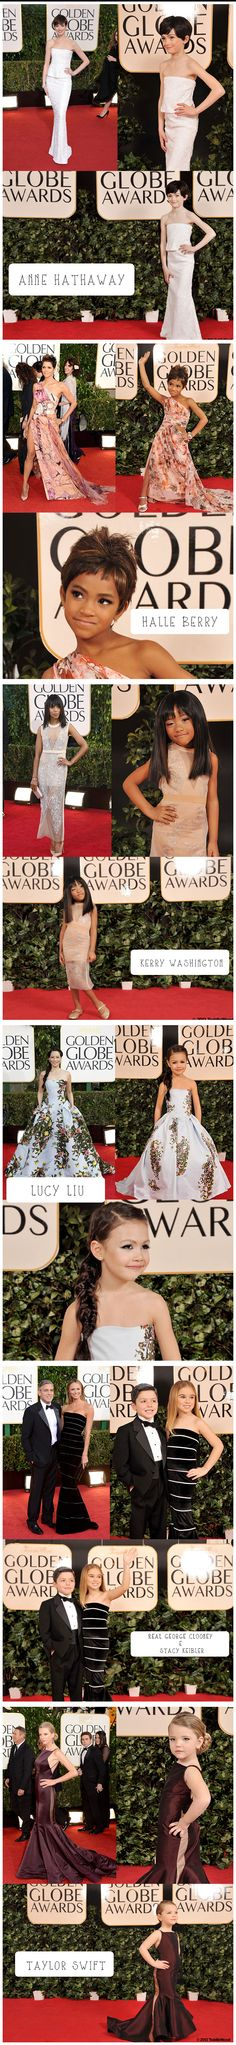 Stars Of The Golden Globes Red Carpet As Children! Love it! :)  Photo by Tricia Messeroux.